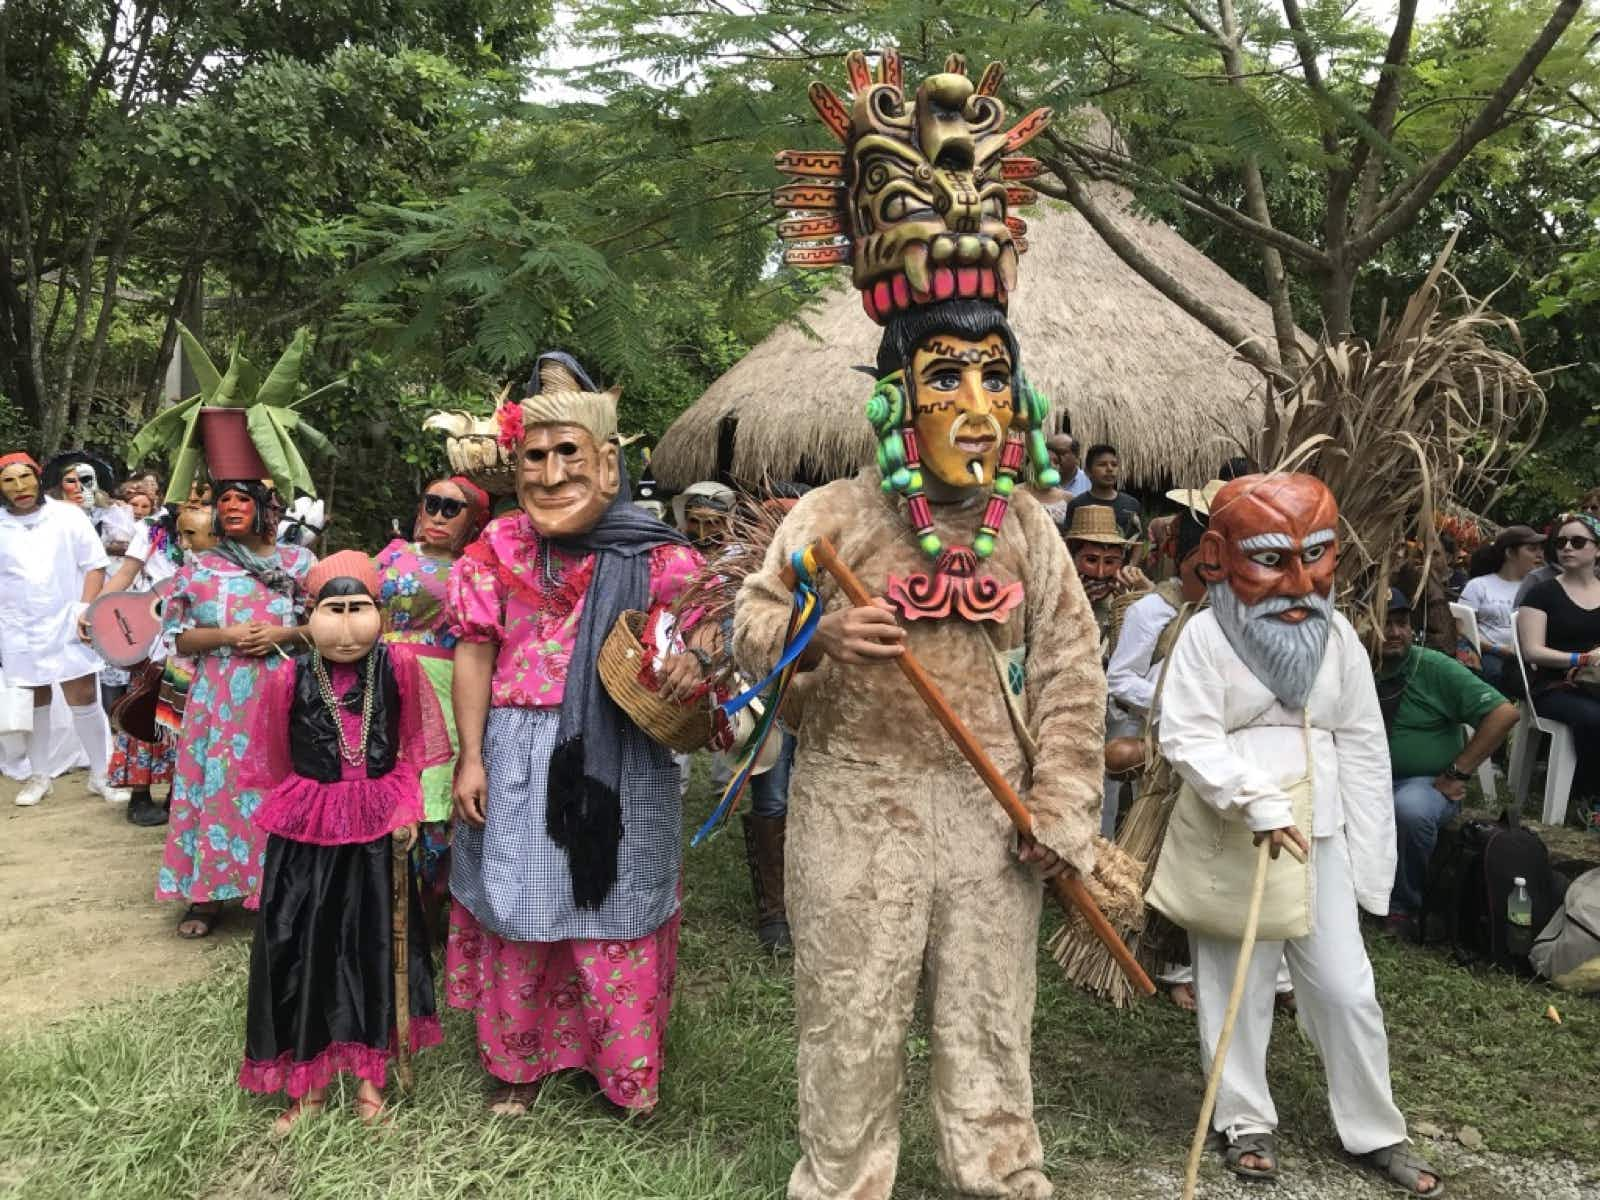 With unique festivals that vary from town to town, the best way to experience Xantolo is by road tripping through La Huasteca Potosina © Jennifer Fernández Solano / Lonely Planet